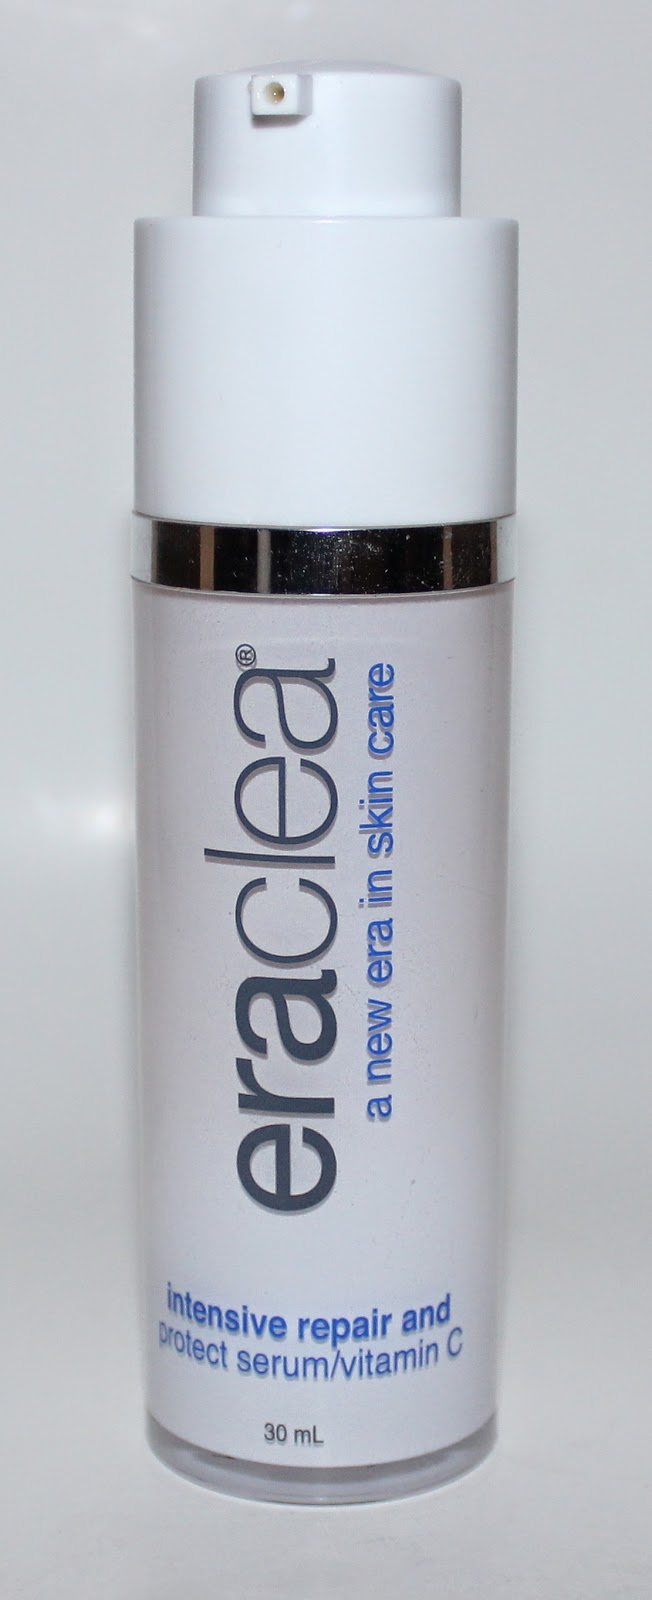 eraclea's Intensive Repair and Protect Serum/Vitamin C Packaging